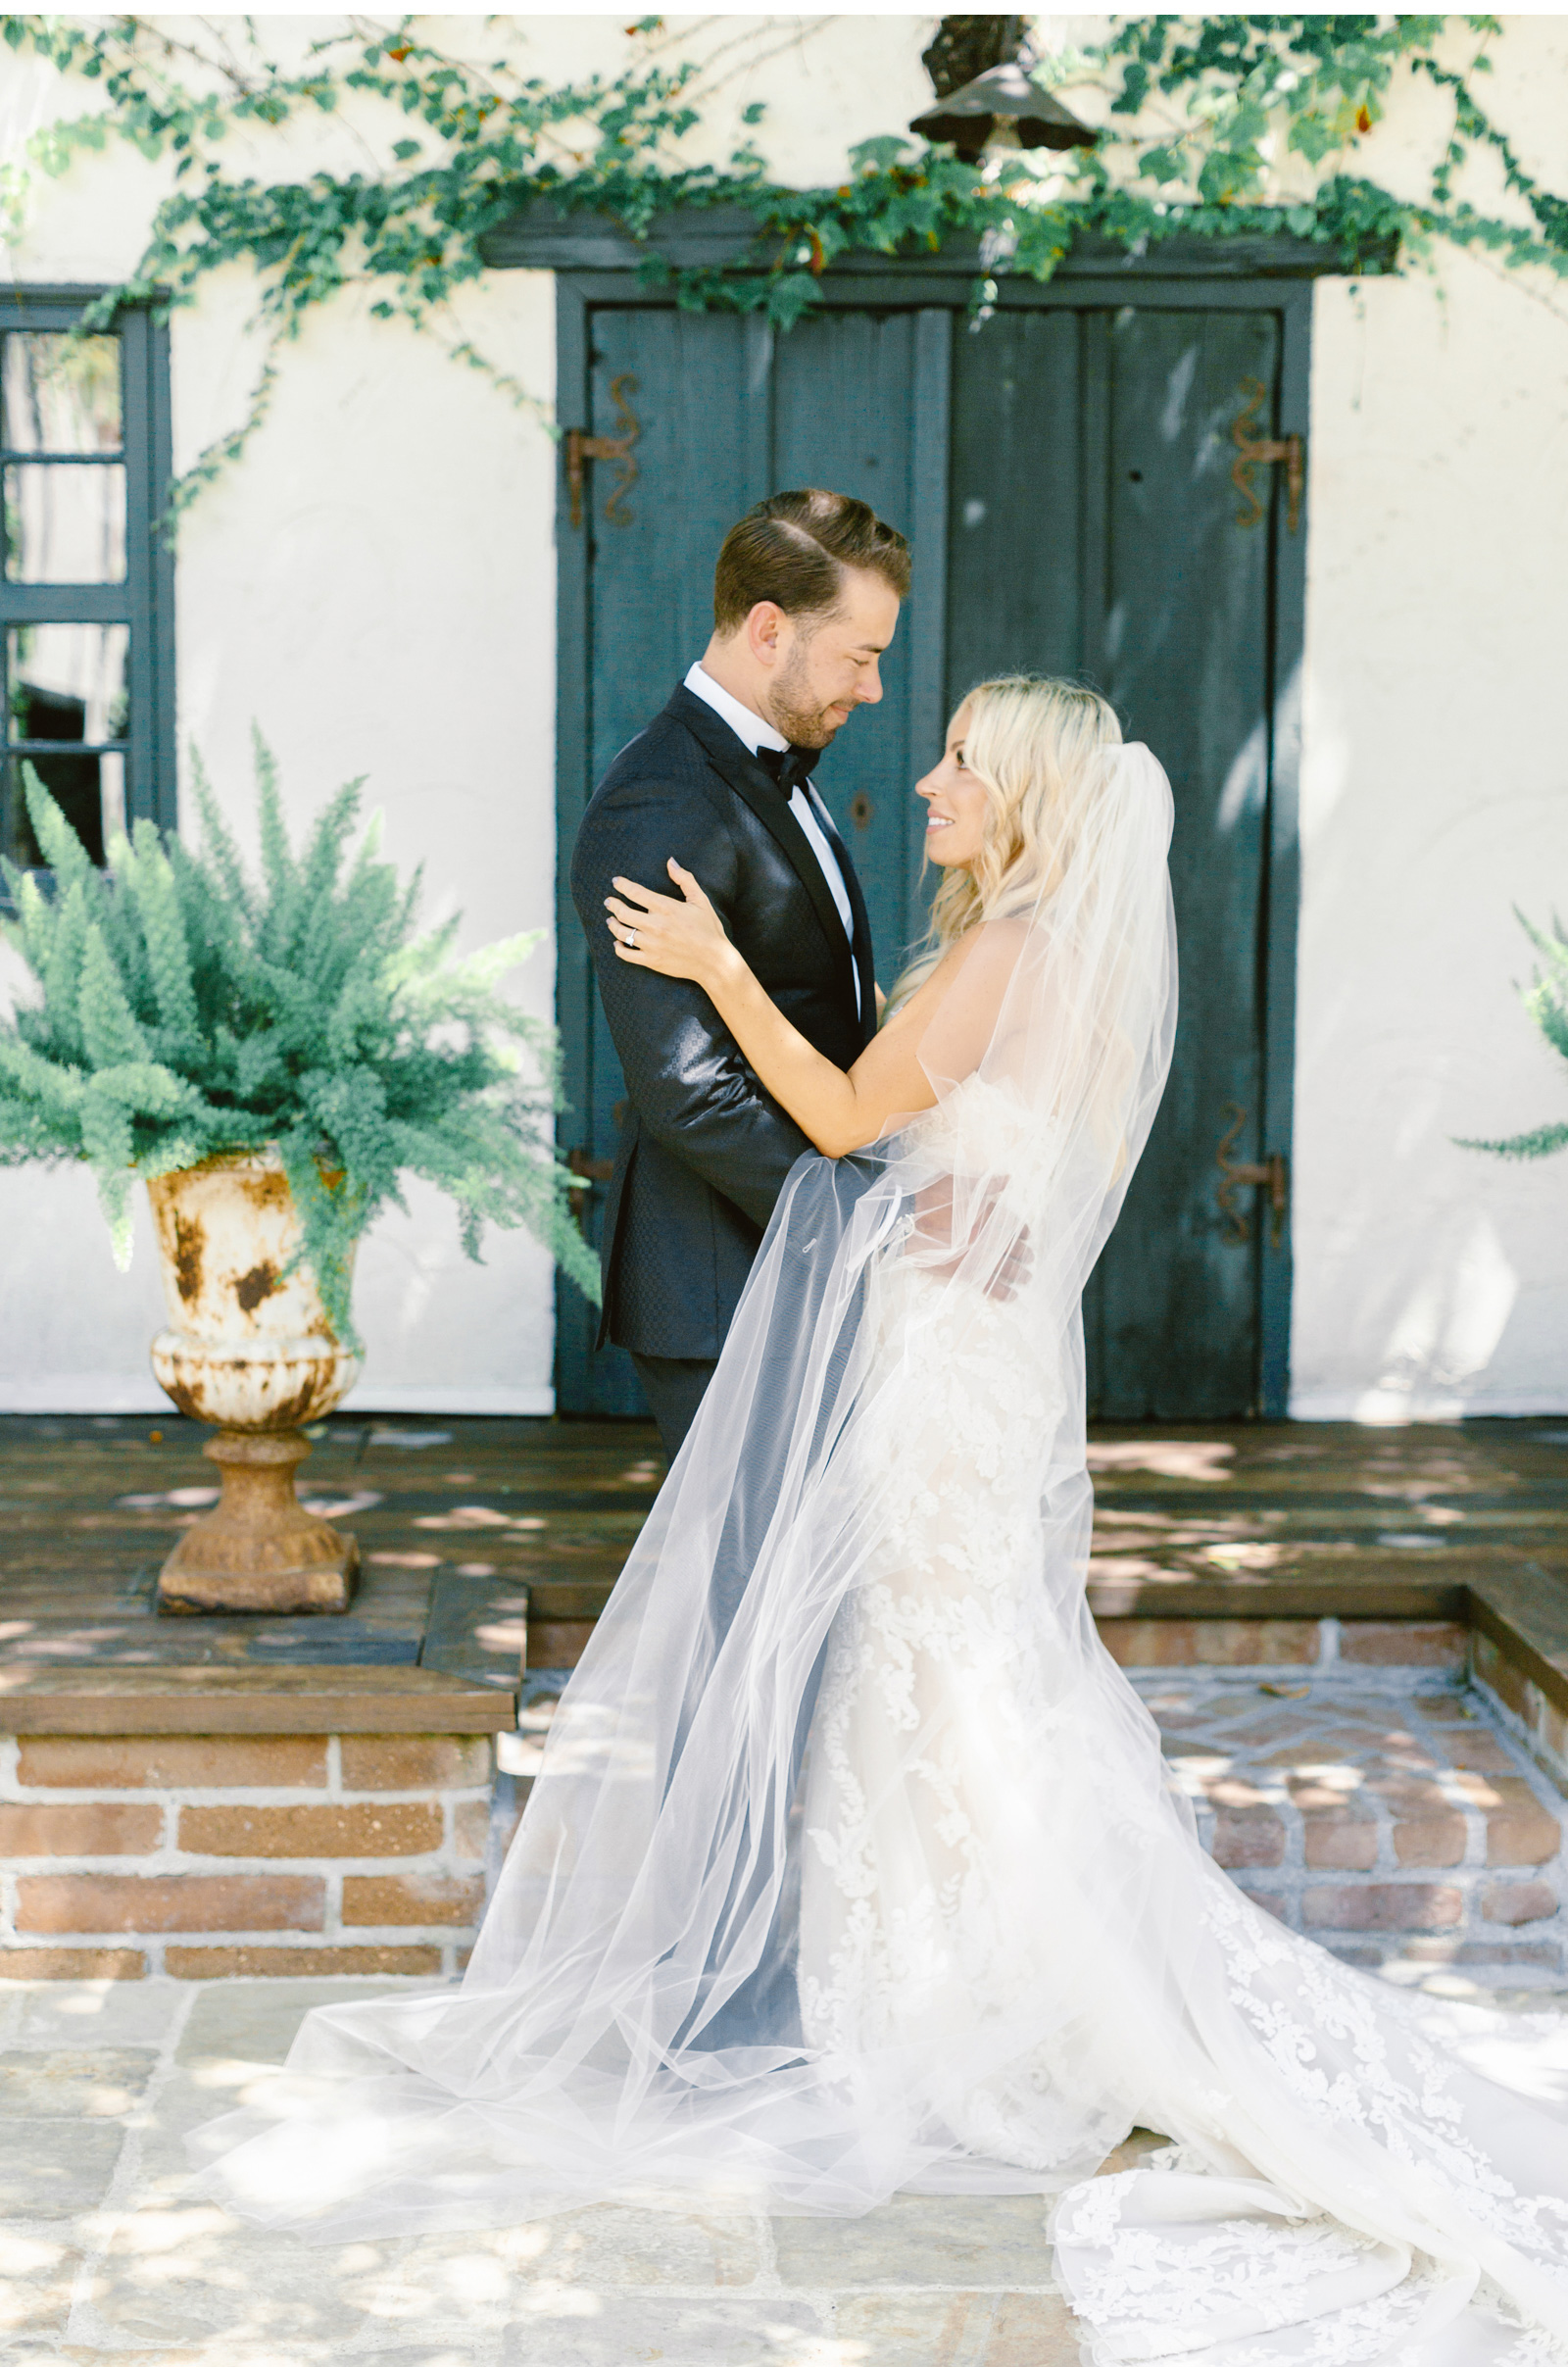 San-Juan-Capistrano-Wedding-Photographer-Malibu-Weddings-Malibu-Wedding-Venues-Natalie-Schutt-Photographer_12.jpg